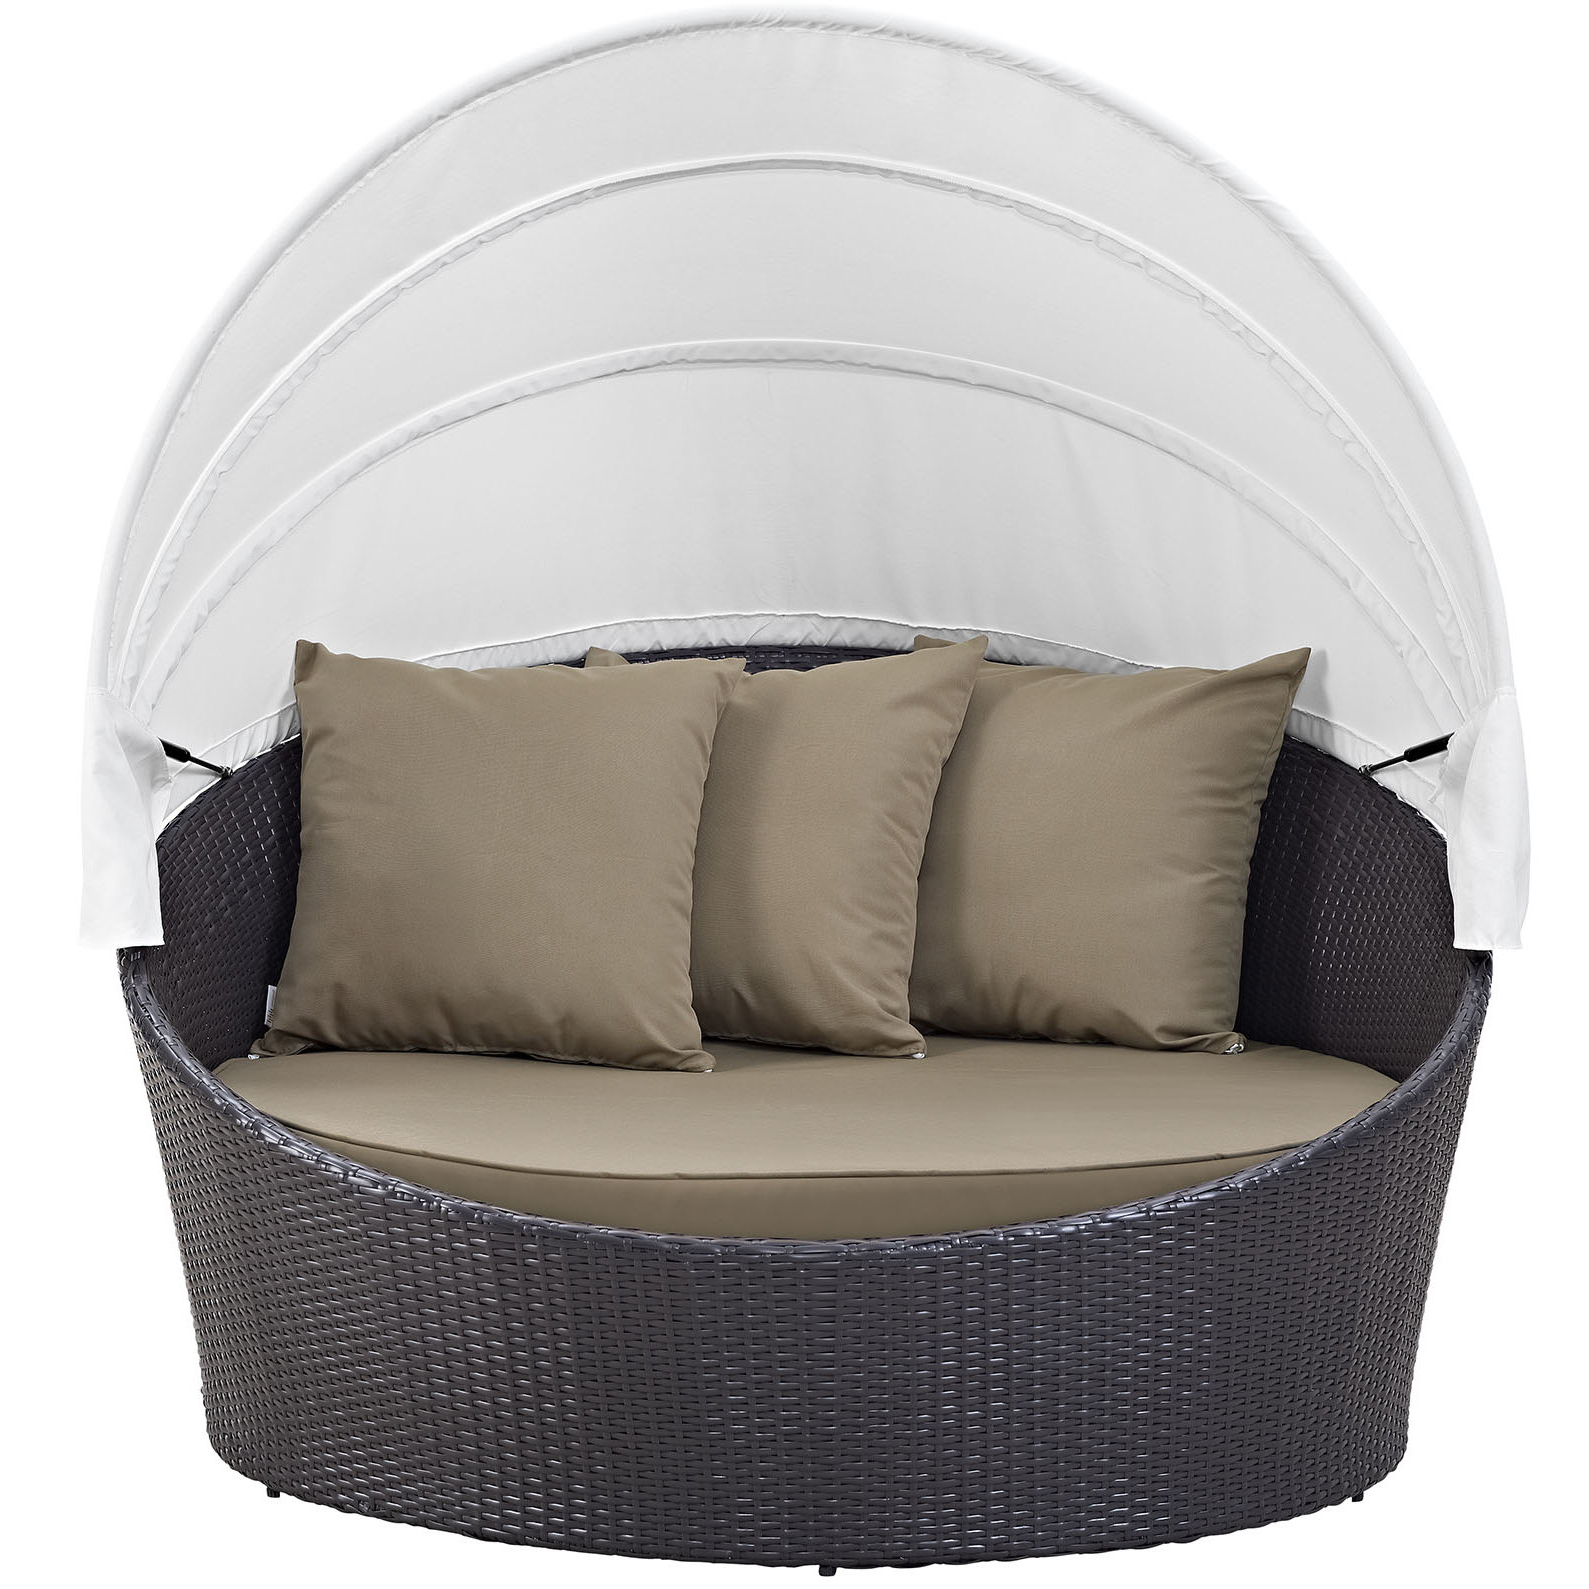 Olu Bamboo Large Round Patio Daybeds With Cushions Pertaining To Trendy Brentwood Canopy Patio Daybed With Cushions (View 12 of 20)